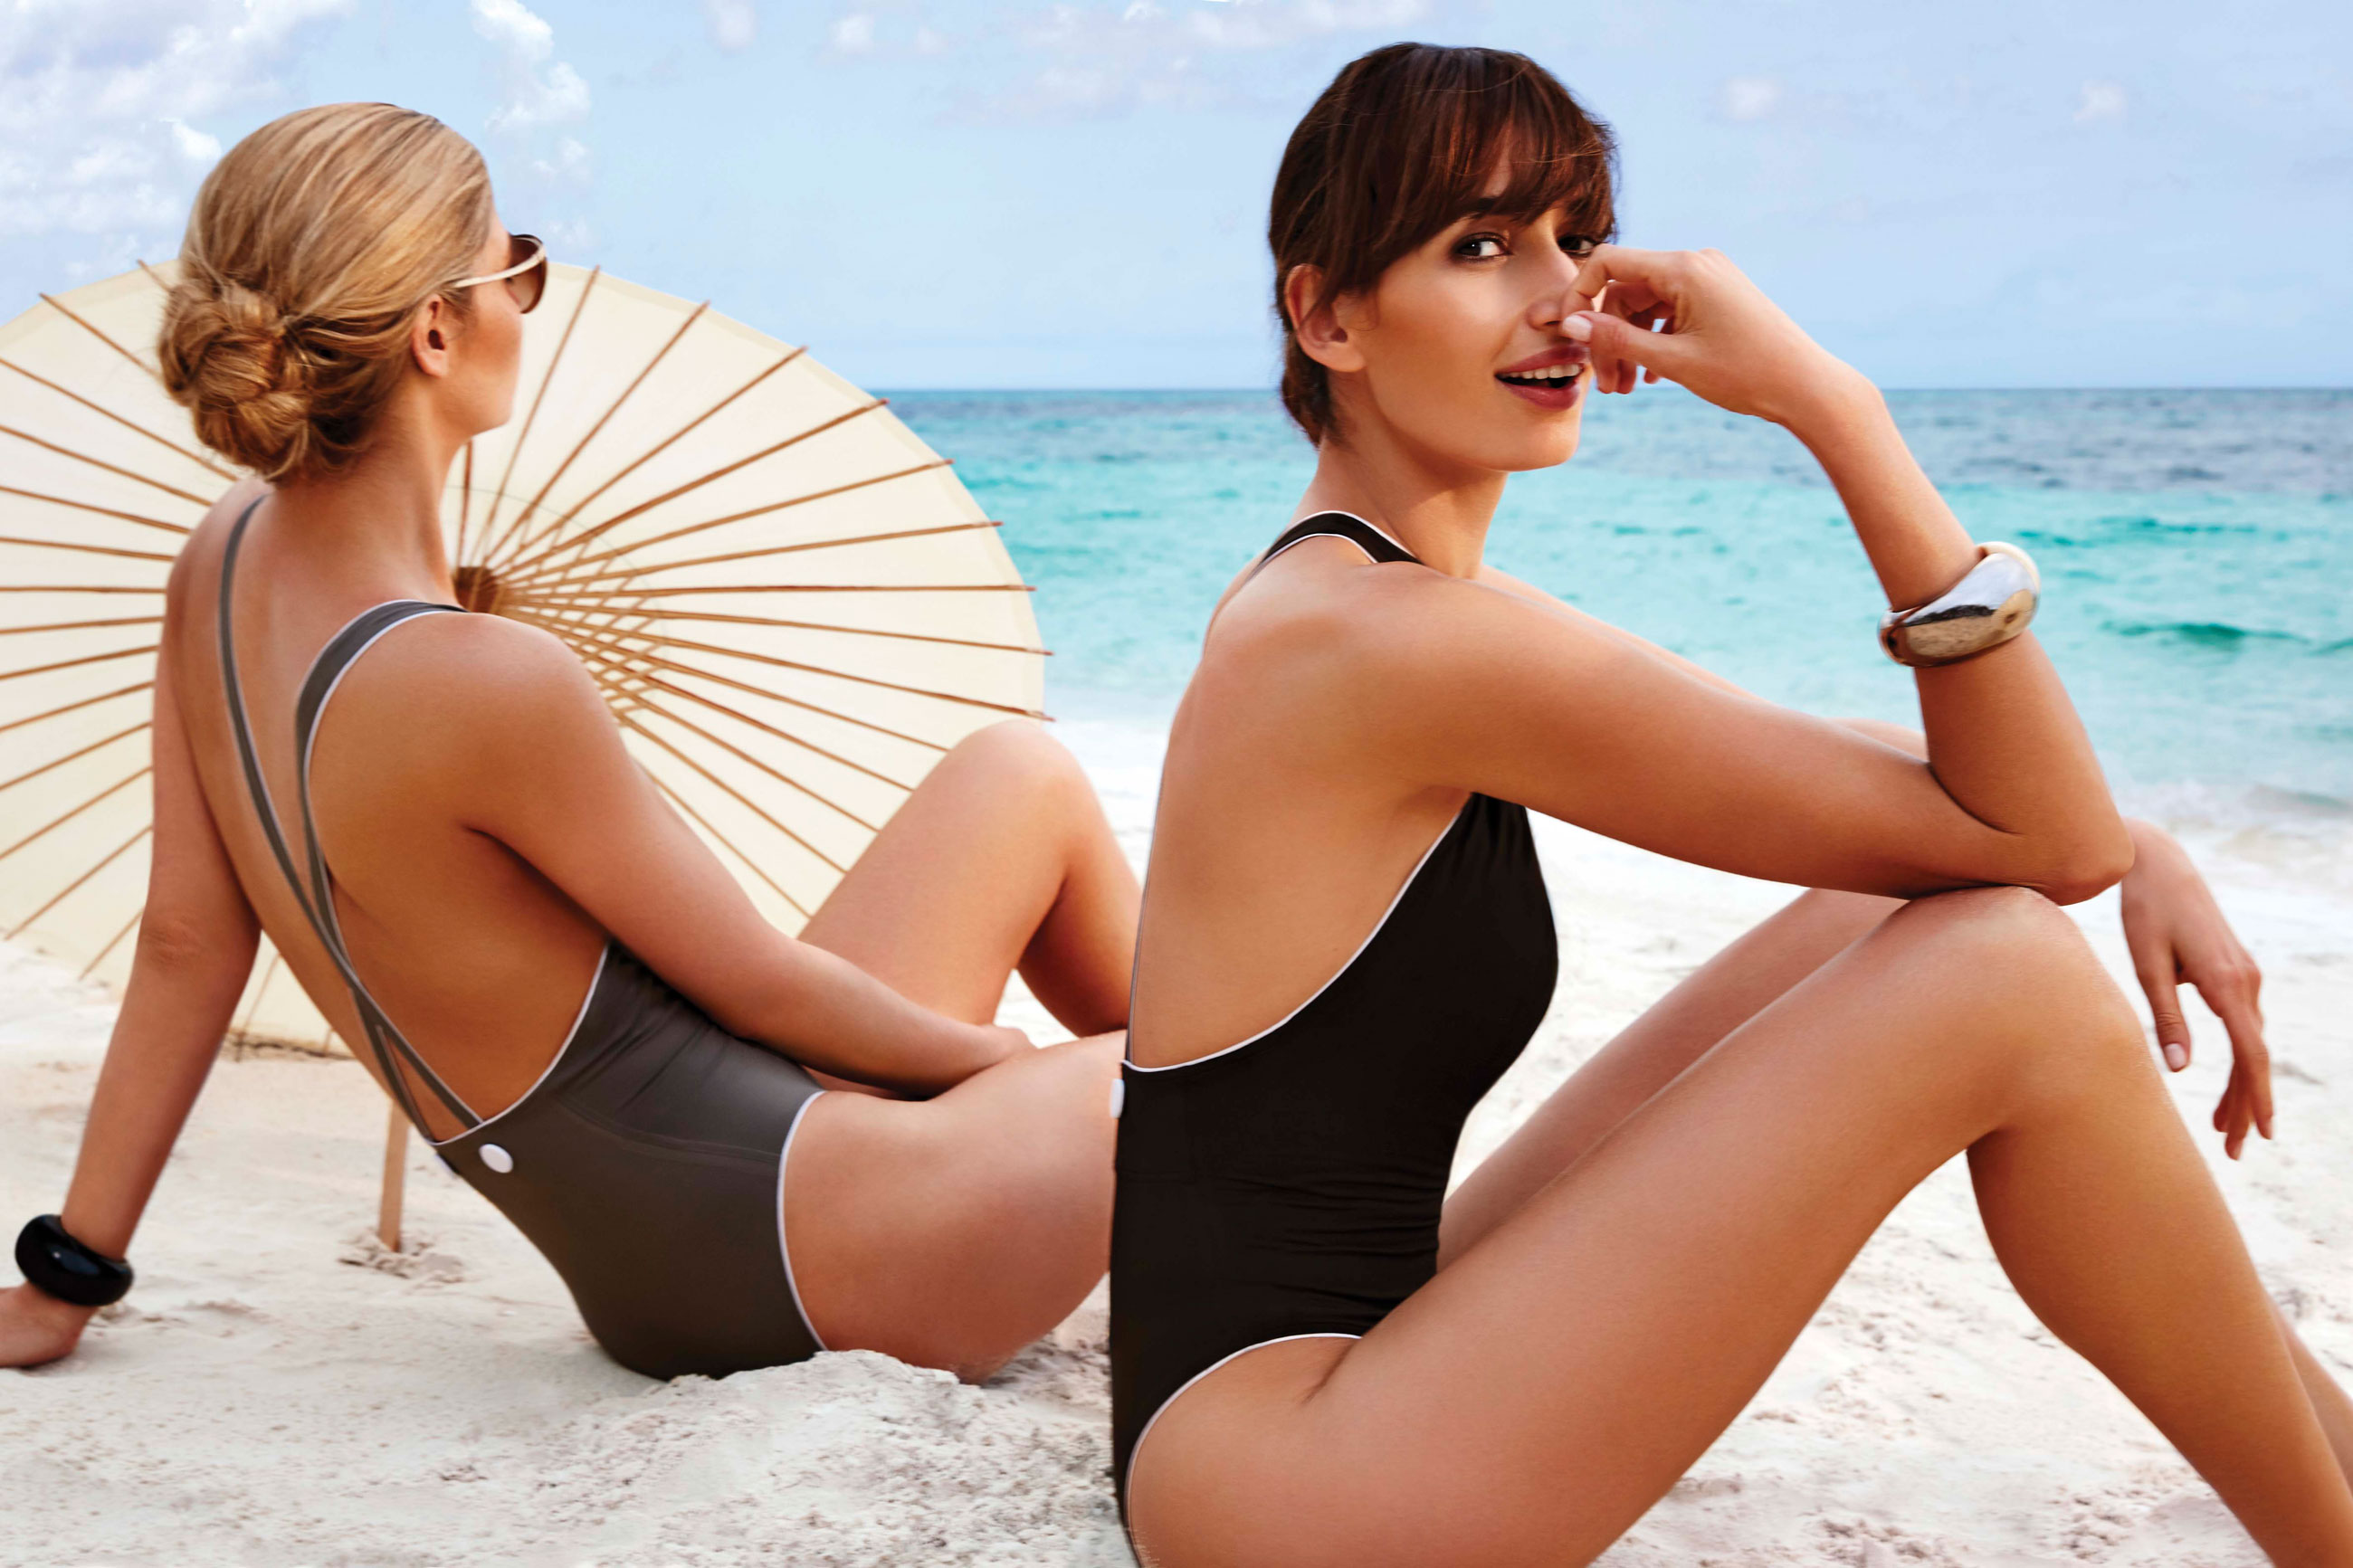 Women on beach in retro one piece swimsuits